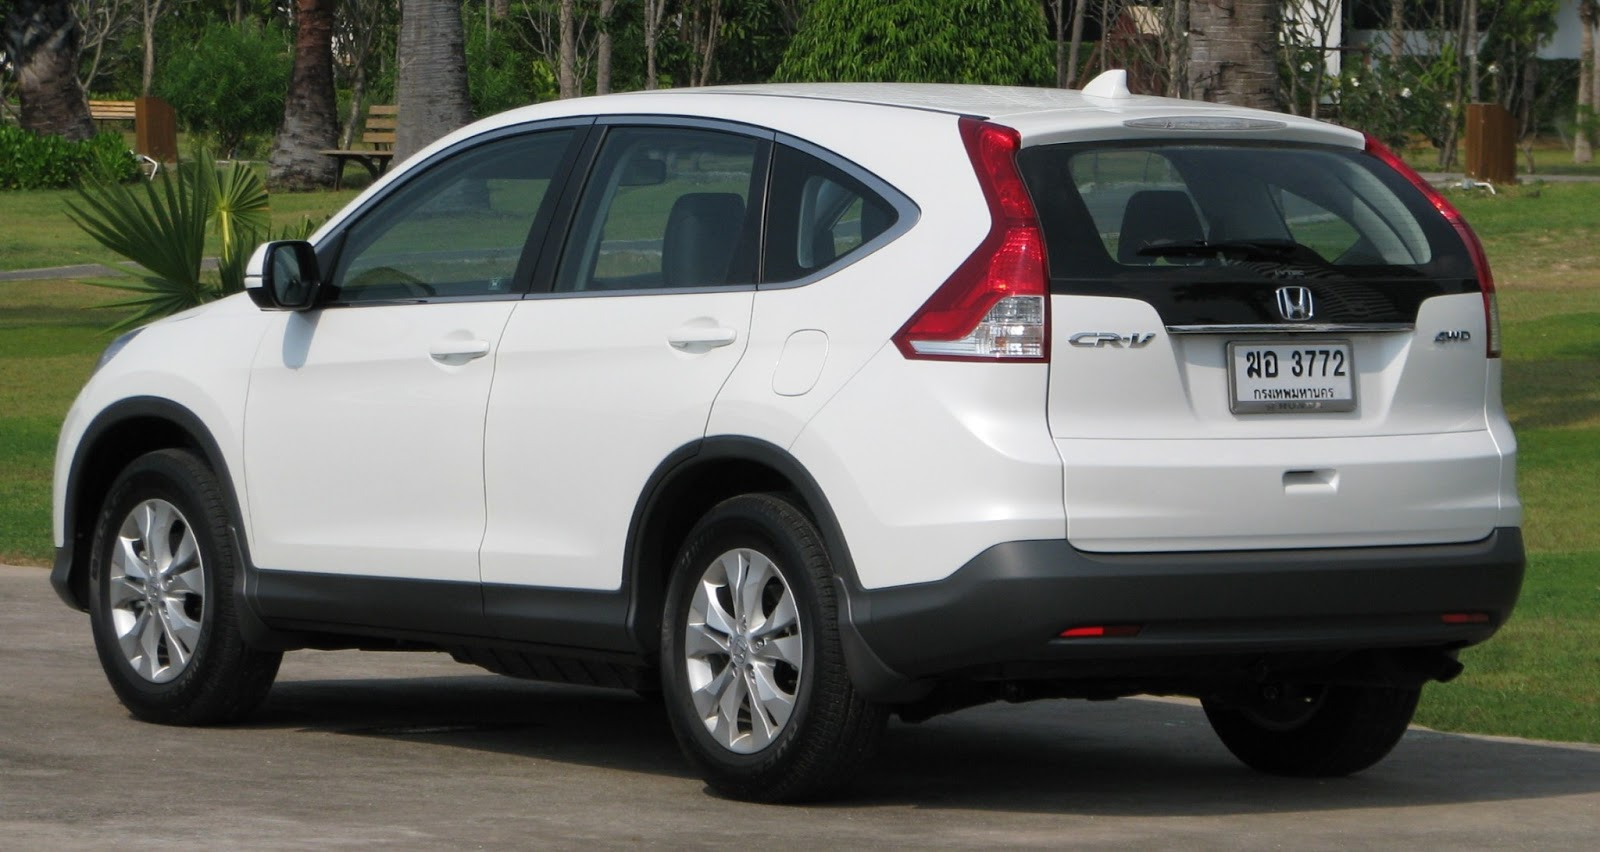 The Honda CR-V very suitable for those family oriented person with